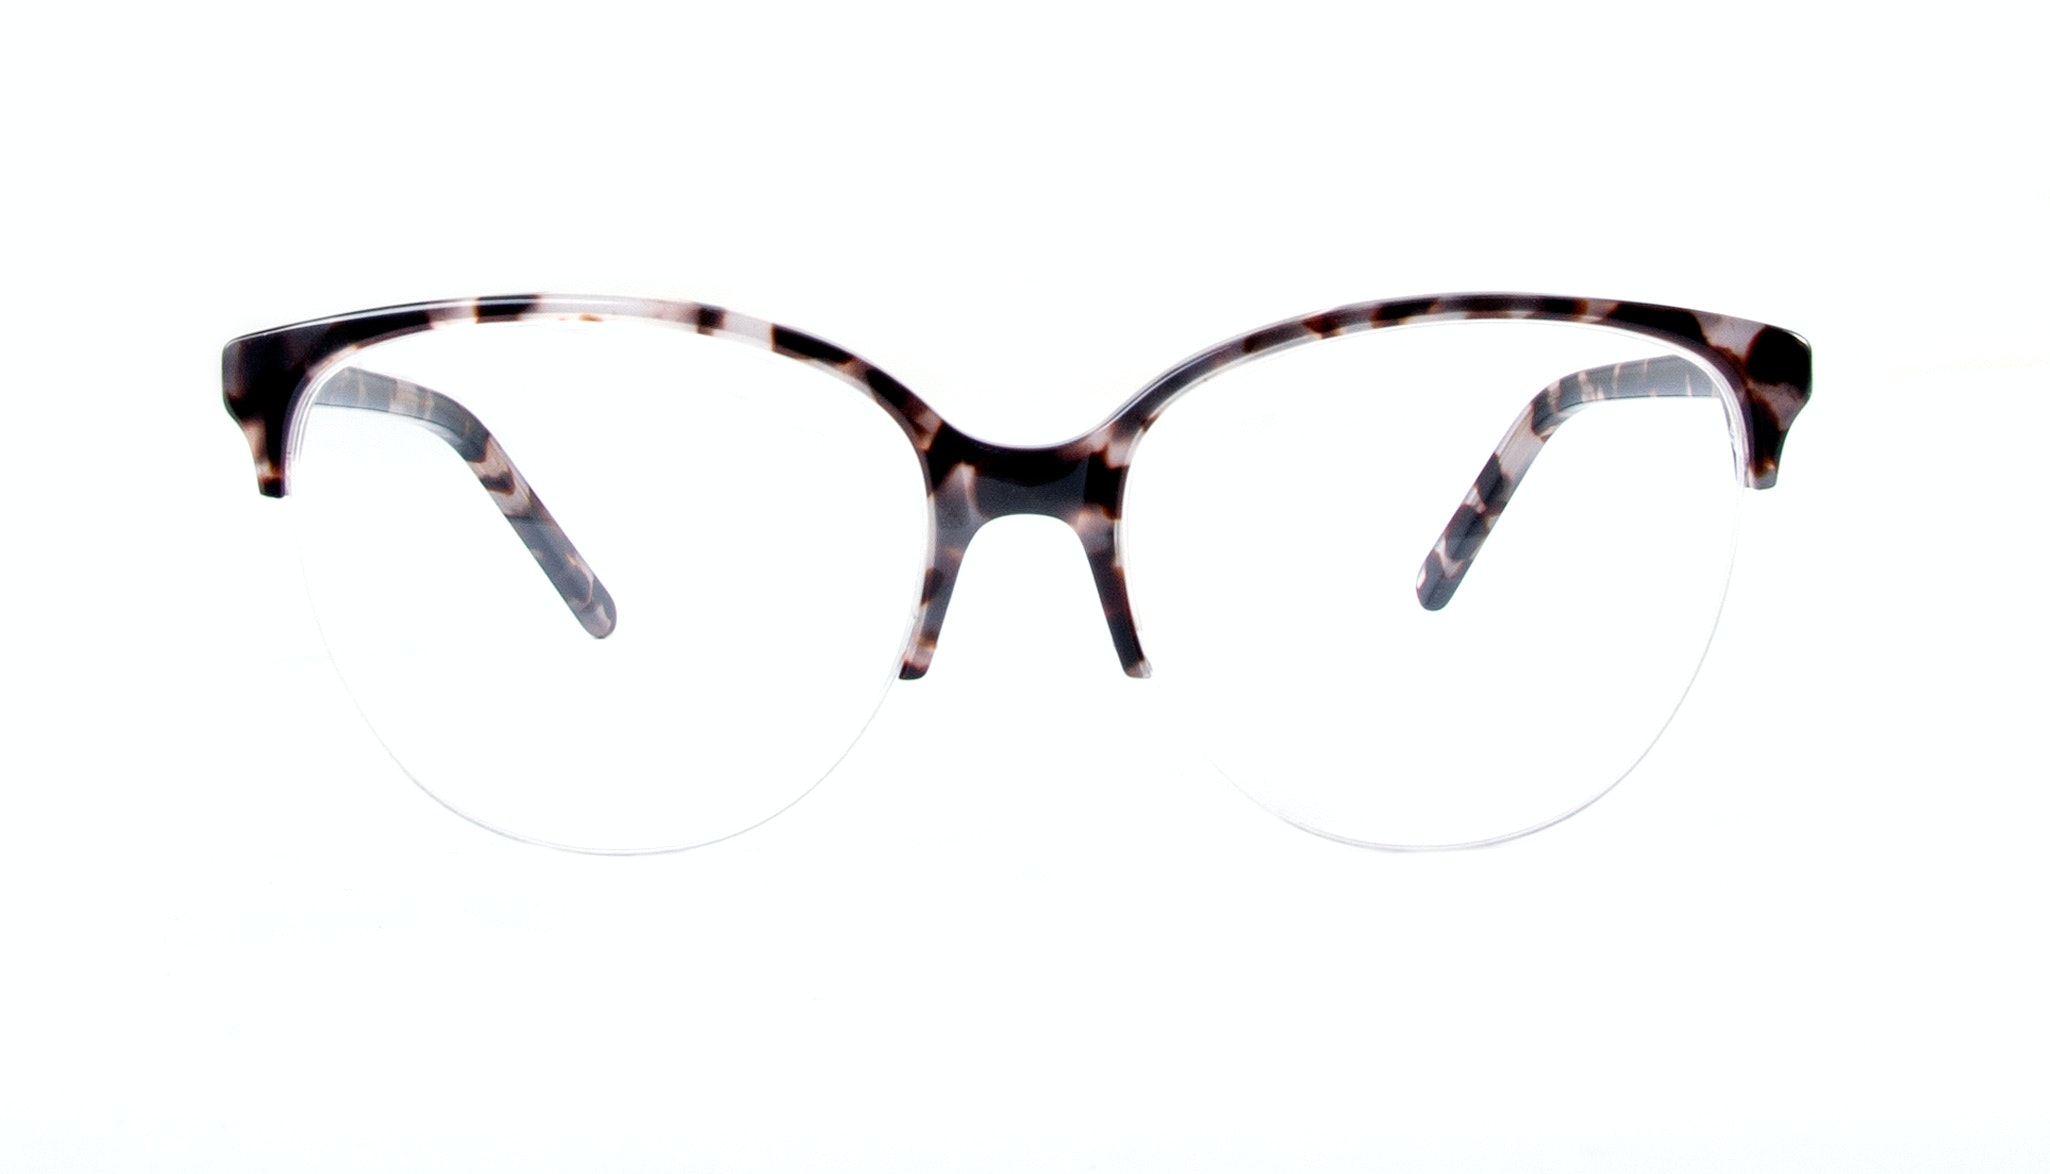 Affordable Fashion Glasses Cat Eye Round Semi-Rimless Eyeglasses Women Imagine Light Mocha Tortoise Front